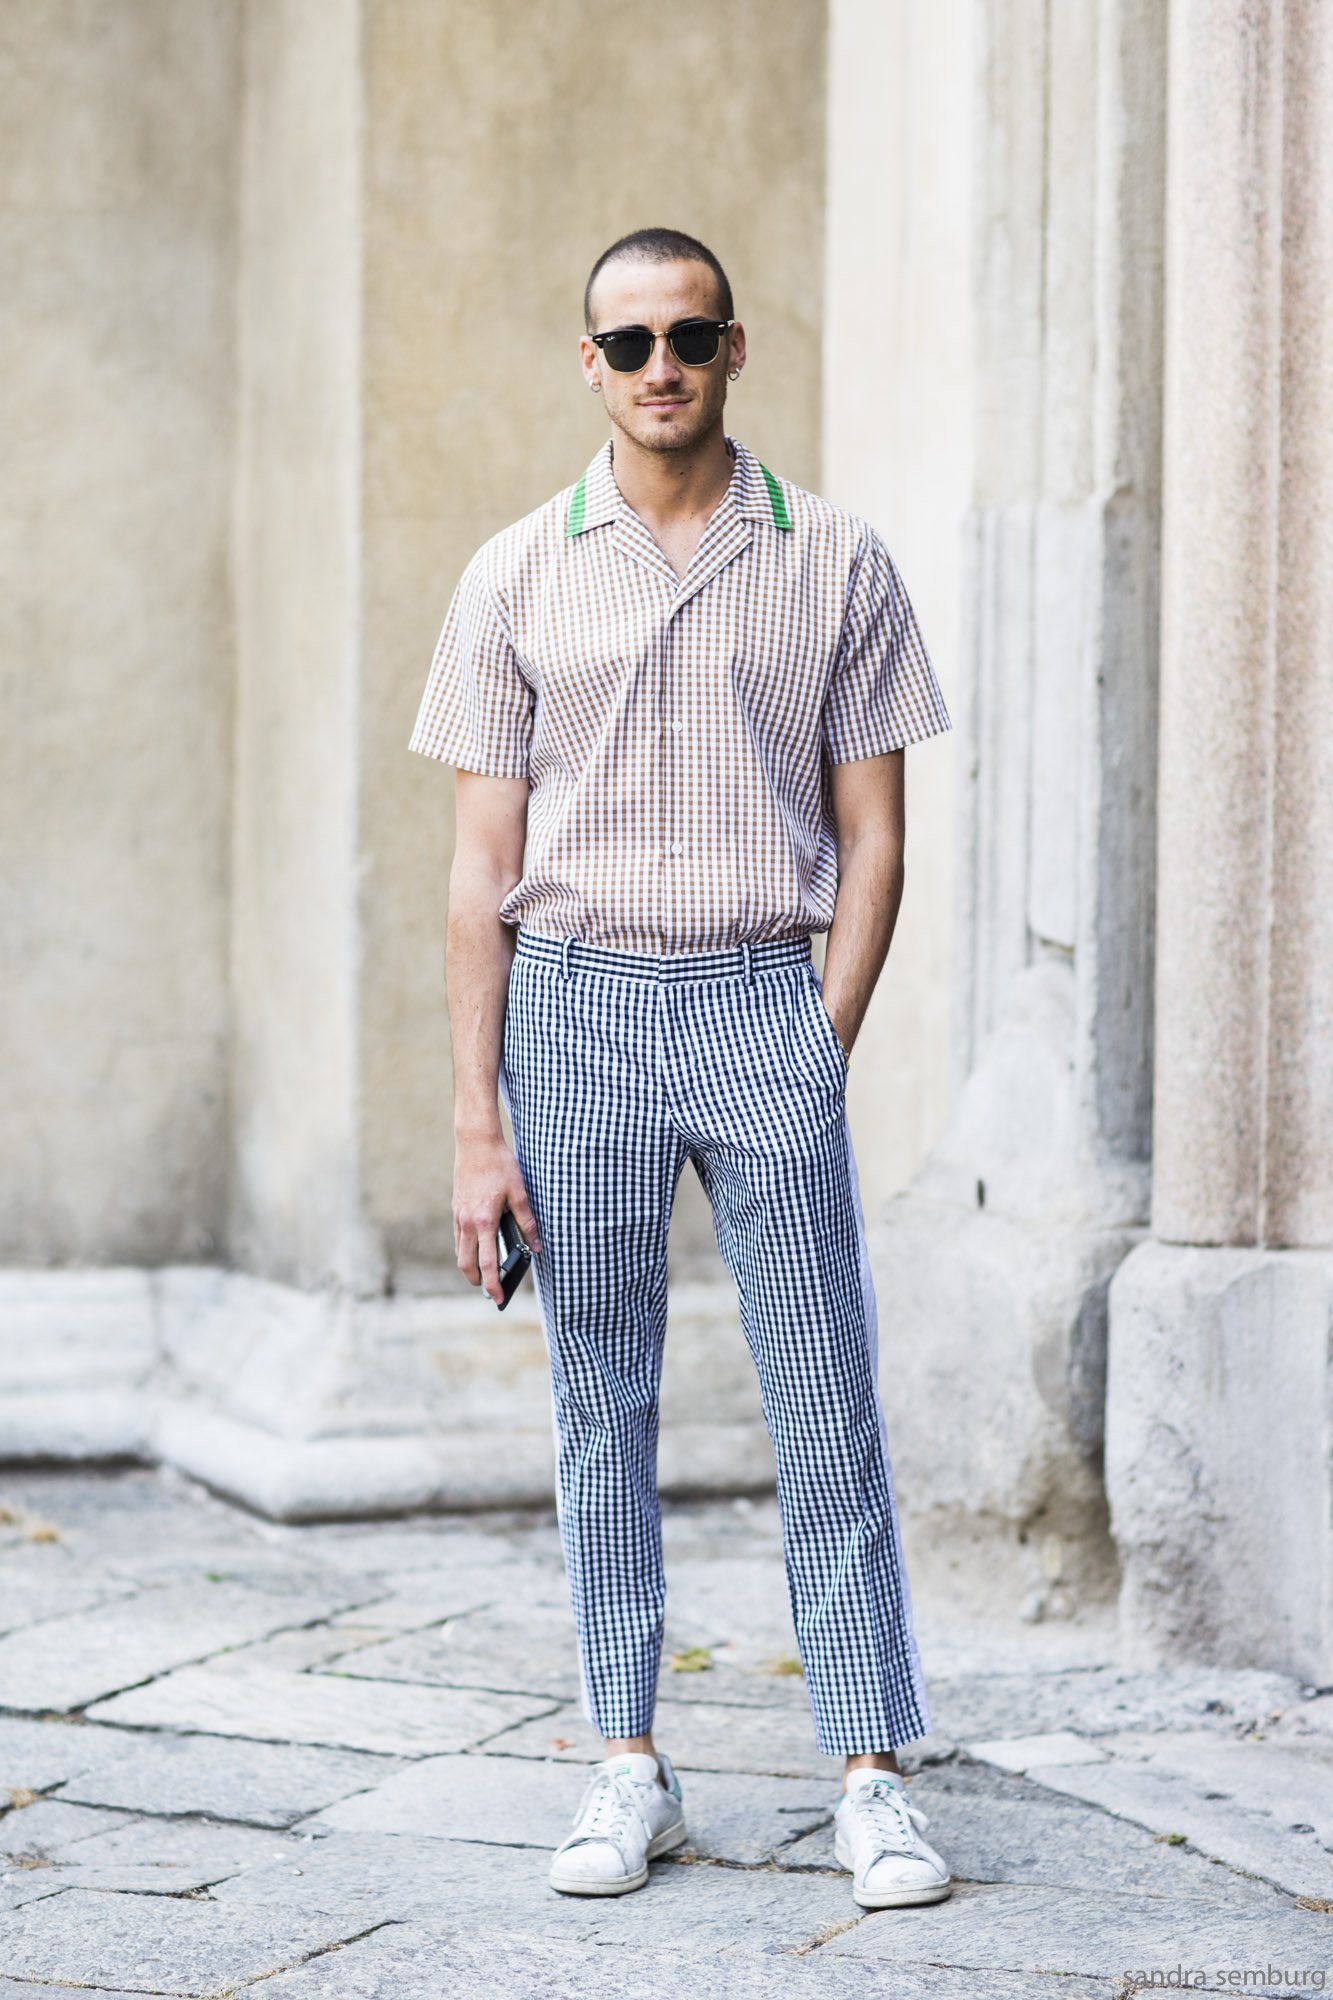 Milan_FW_Mens2015_sandrasemburg_20150621-4441